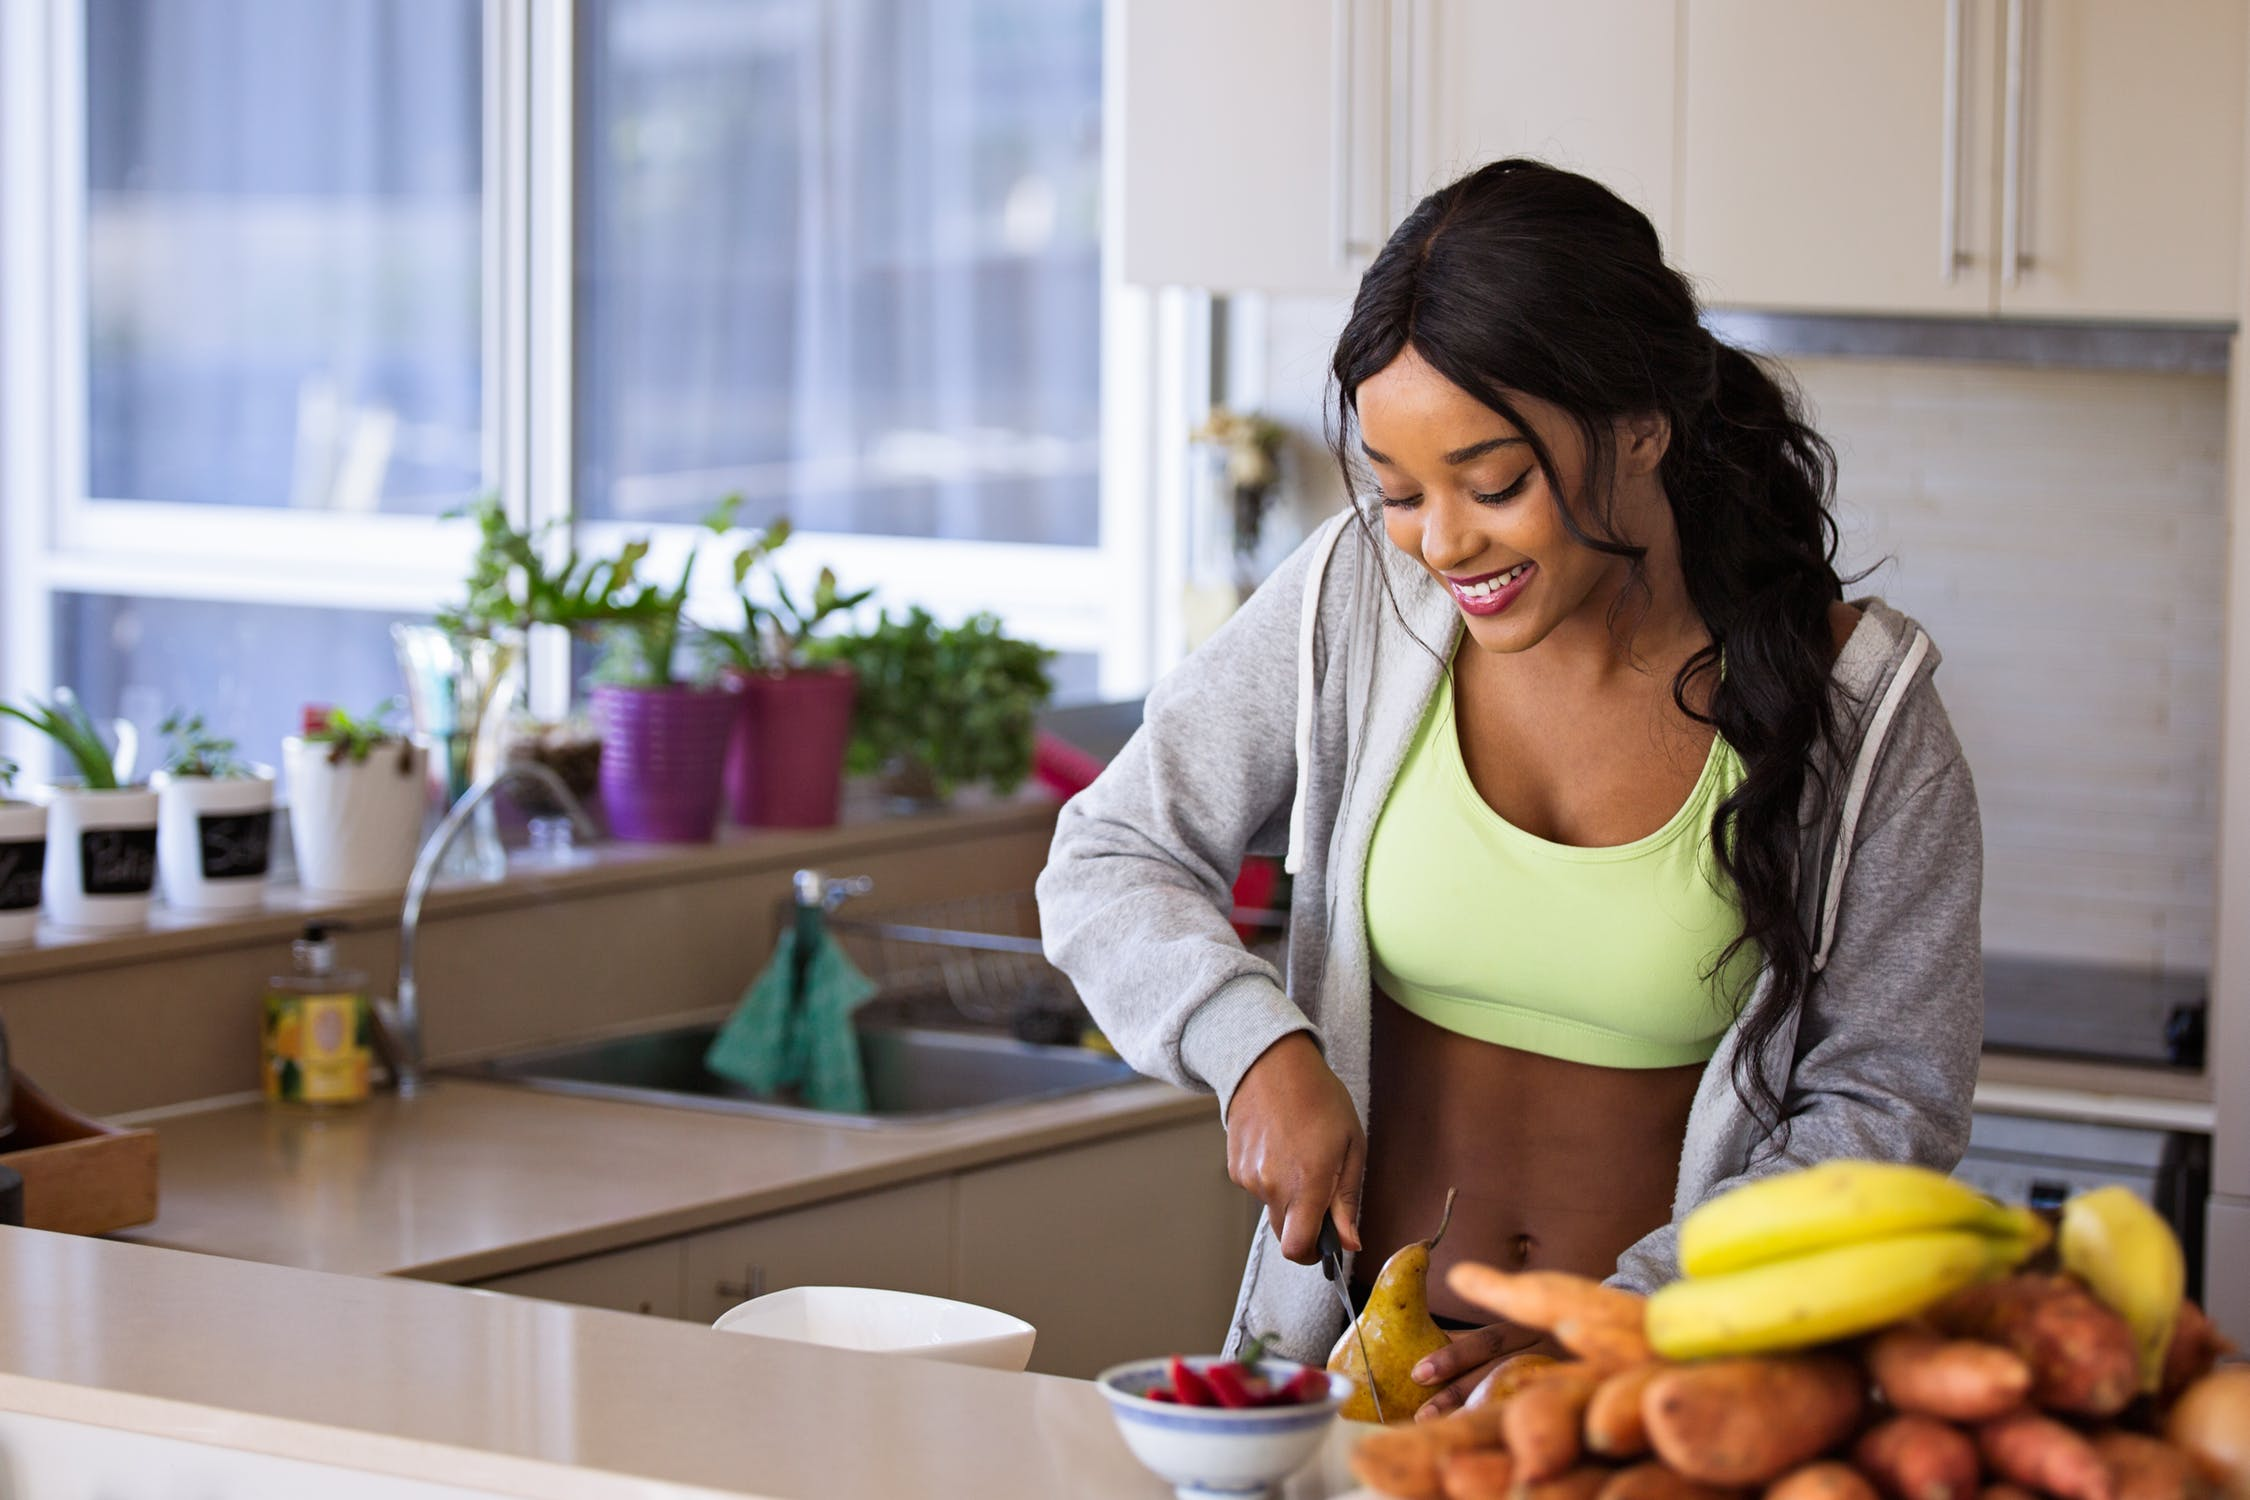 Nutrition Coaching Plan - 2 Sessions Per Week   3 Month Contractual Commitment  Features: 1 Nutrition Coaching Session per Week, 3 Month Access to the Power Nutrition System,